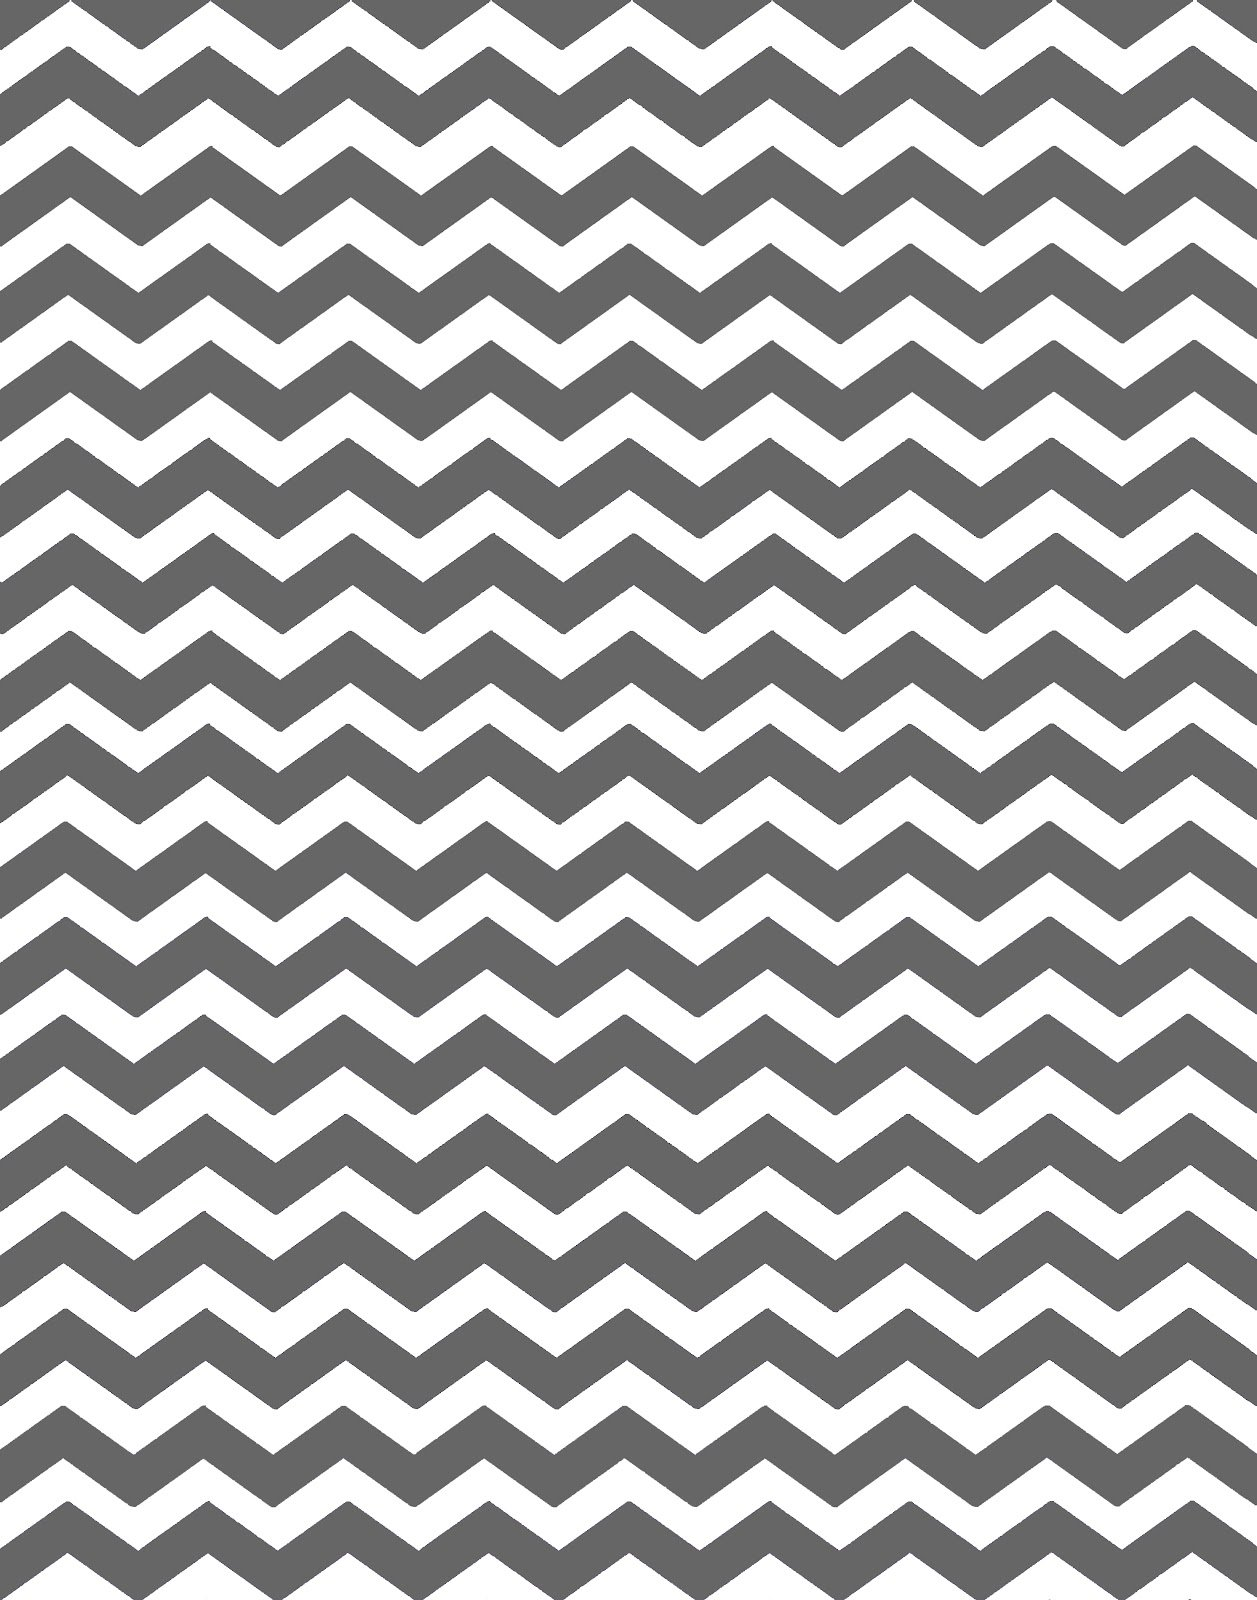 Gray And White Pattern Background | Top Pictures Gallery Online - Gray And White Chevron Wallpaper - WallpaperSafari